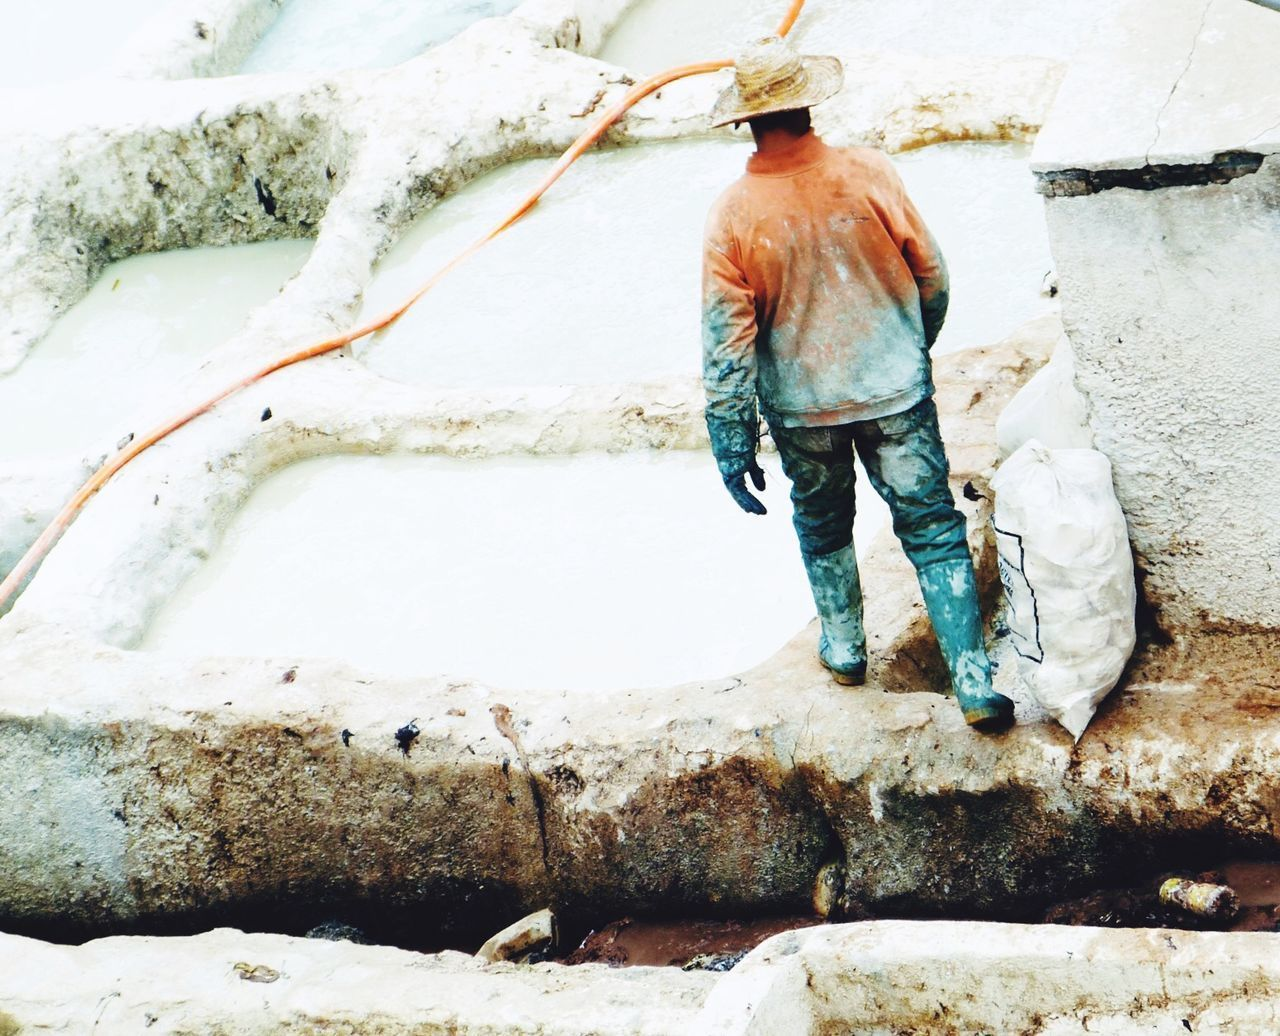 REAR VIEW OF MAN WORKING IN WINTER